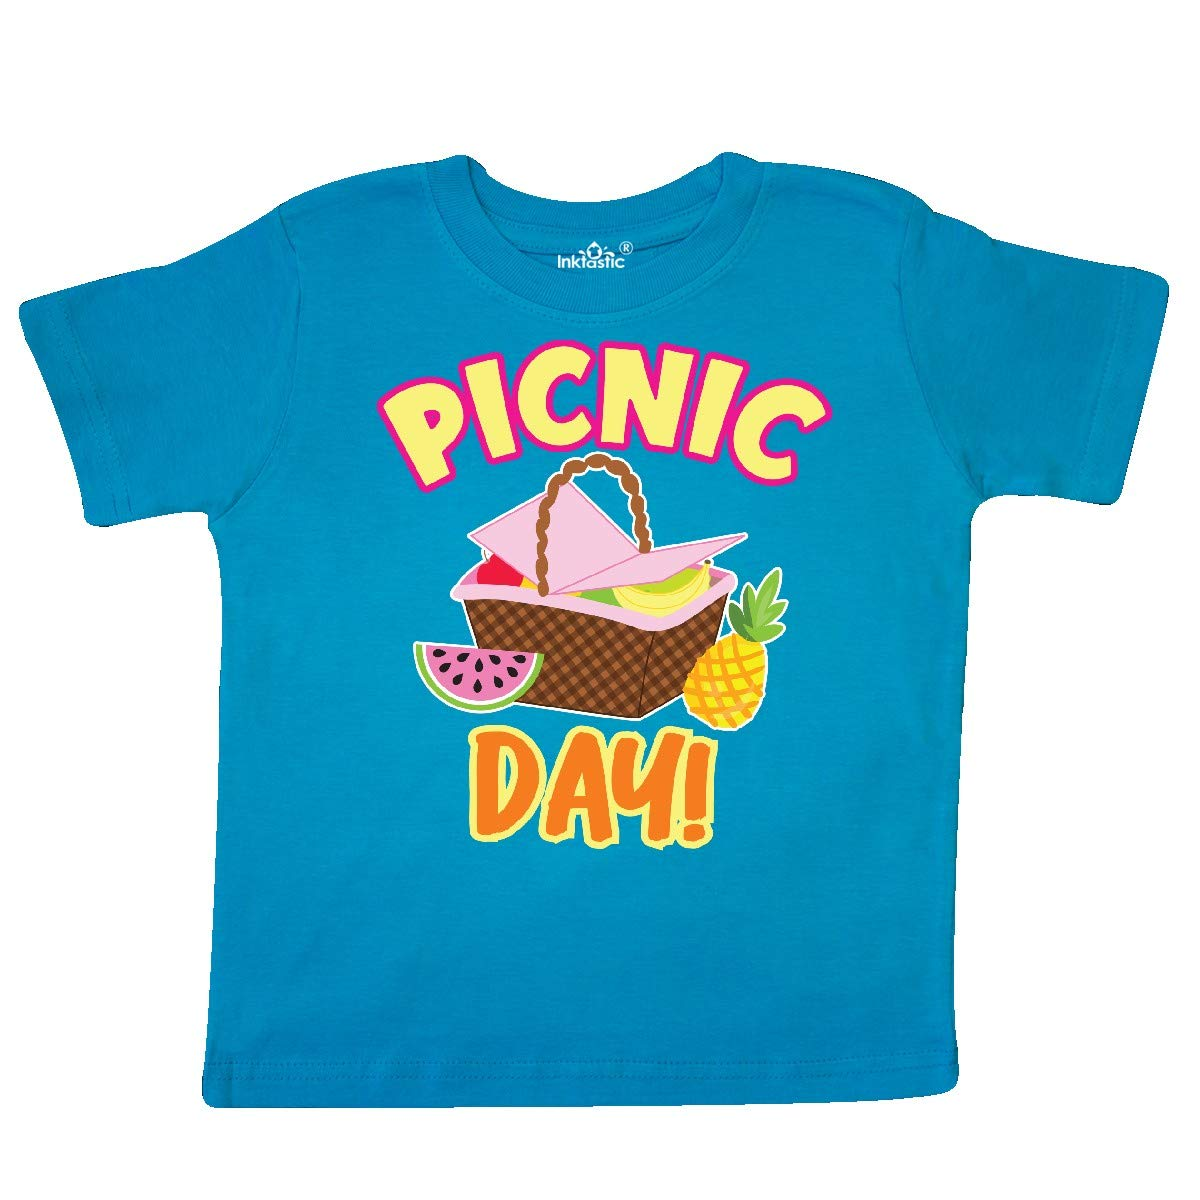 inktastic Picnic Day with Basket and Fruit Toddler T-Shirt